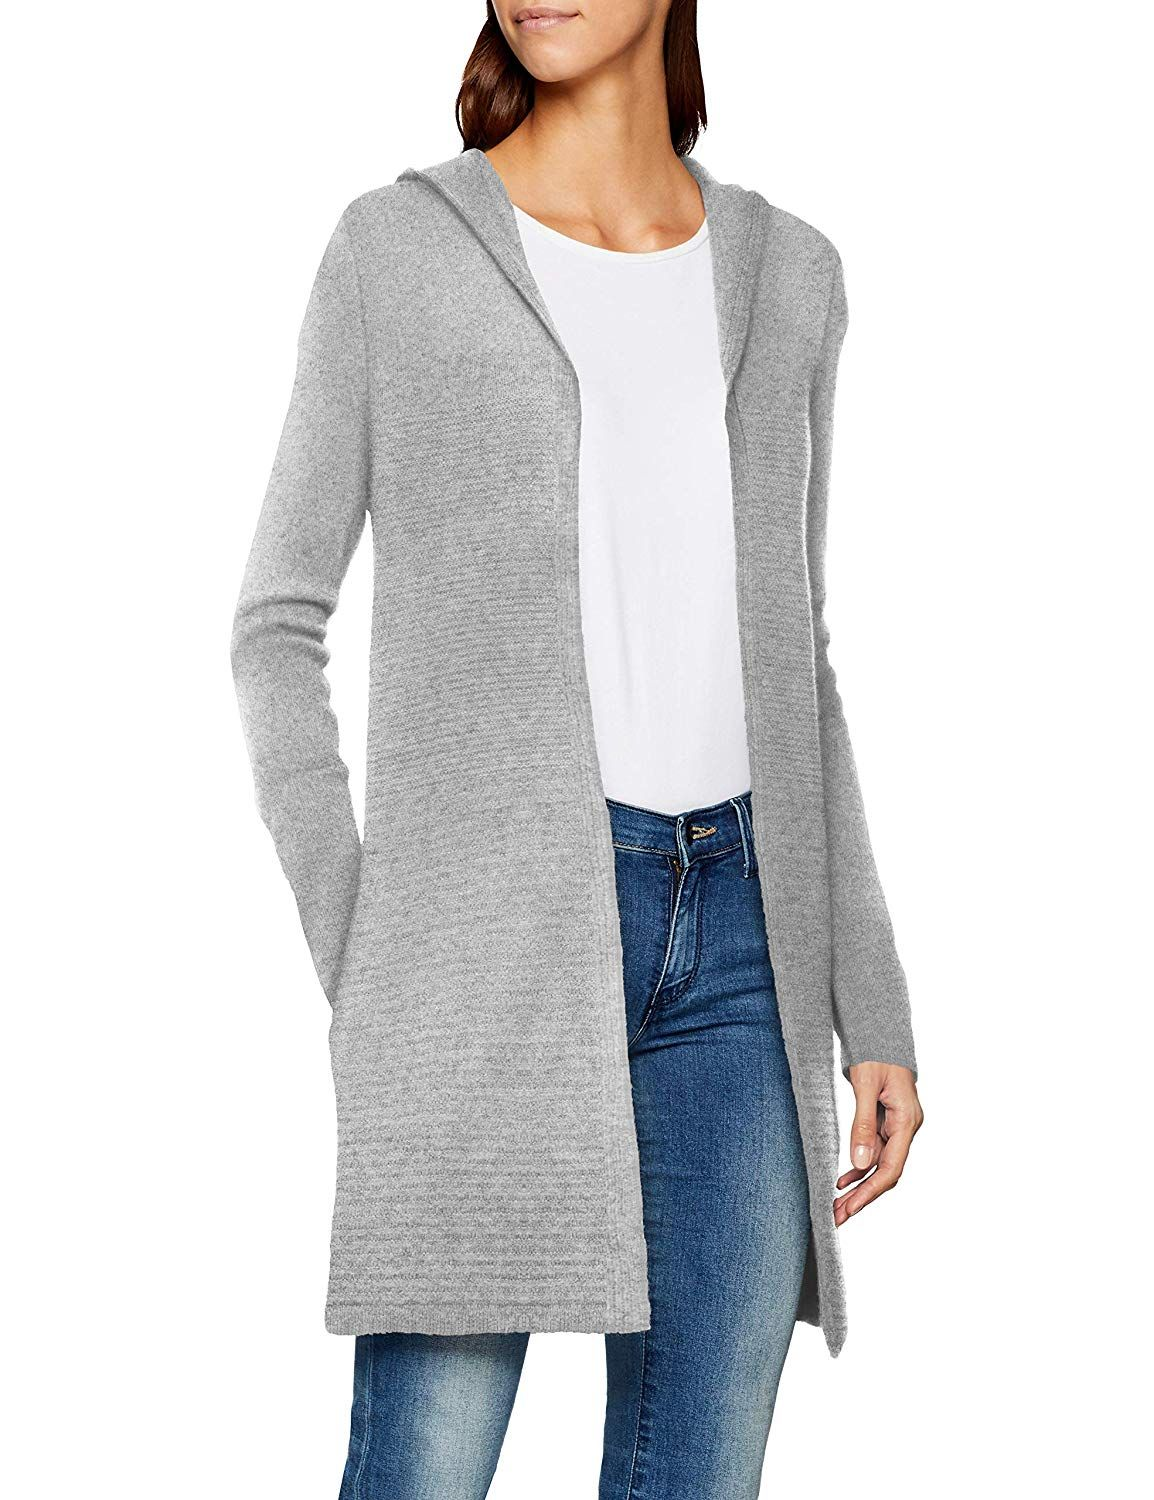 outlet store 47288 b5f0d TOM TAILOR Damen Strickjacke, grauer Cardigan mit Kapuze ...